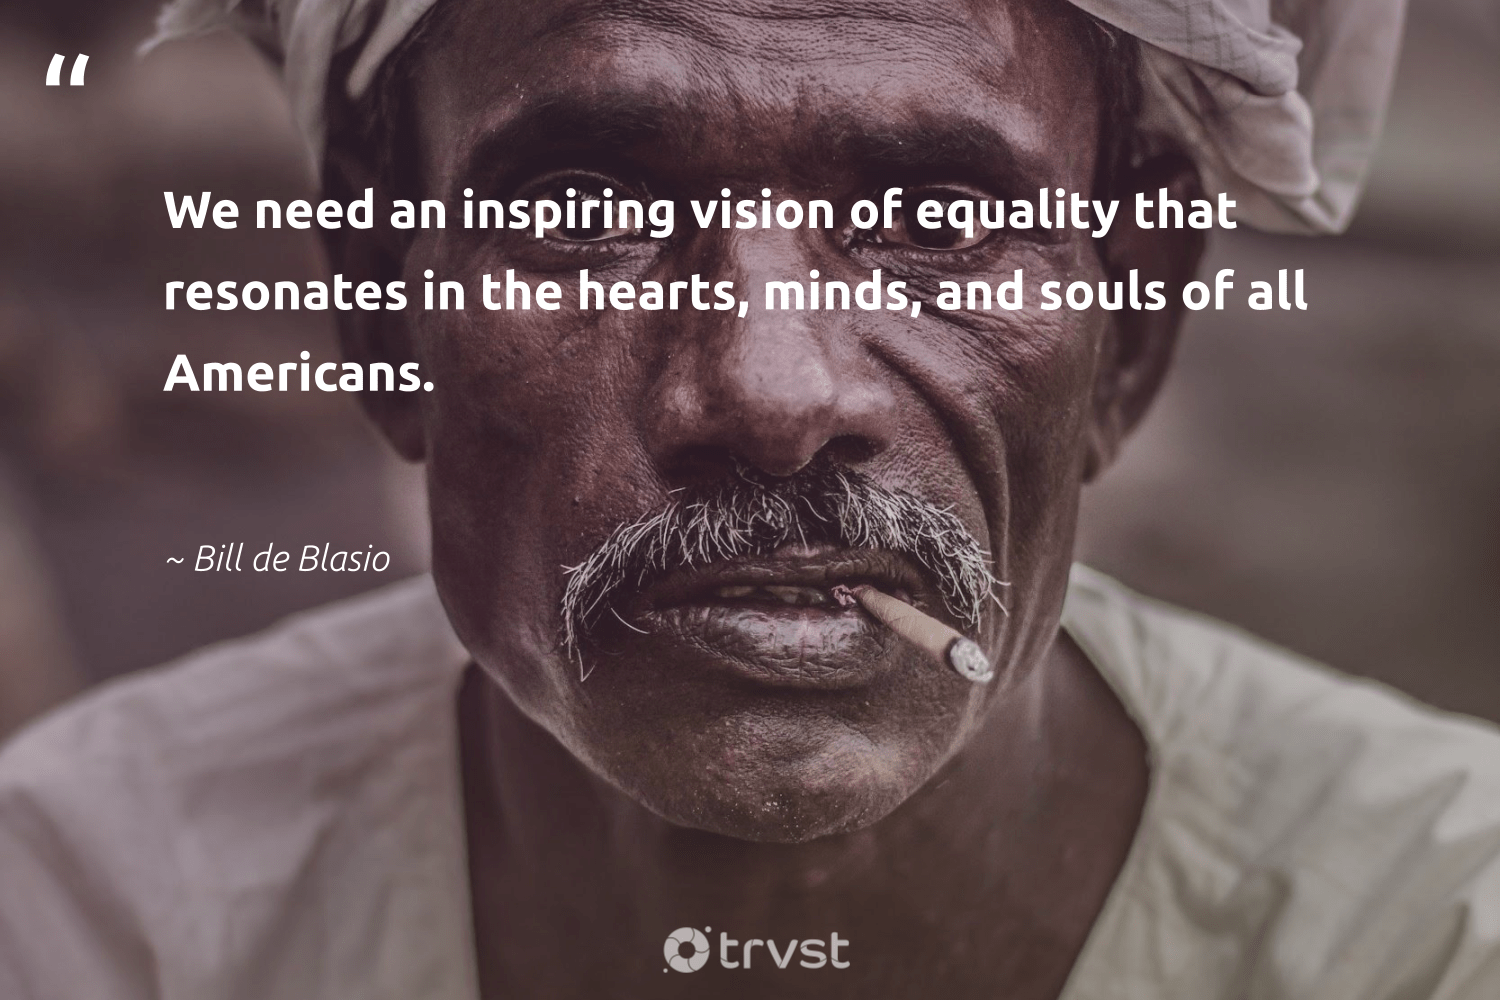 """We need an inspiring vision of equality that resonates in the hearts, minds, and souls of all Americans.""  - Bill de Blasio #trvst #quotes #equality #standup #bethechange #socialchange #planetearthfirst #equalopportunity #weareallone #socialgood #collectiveaction #equalrights"